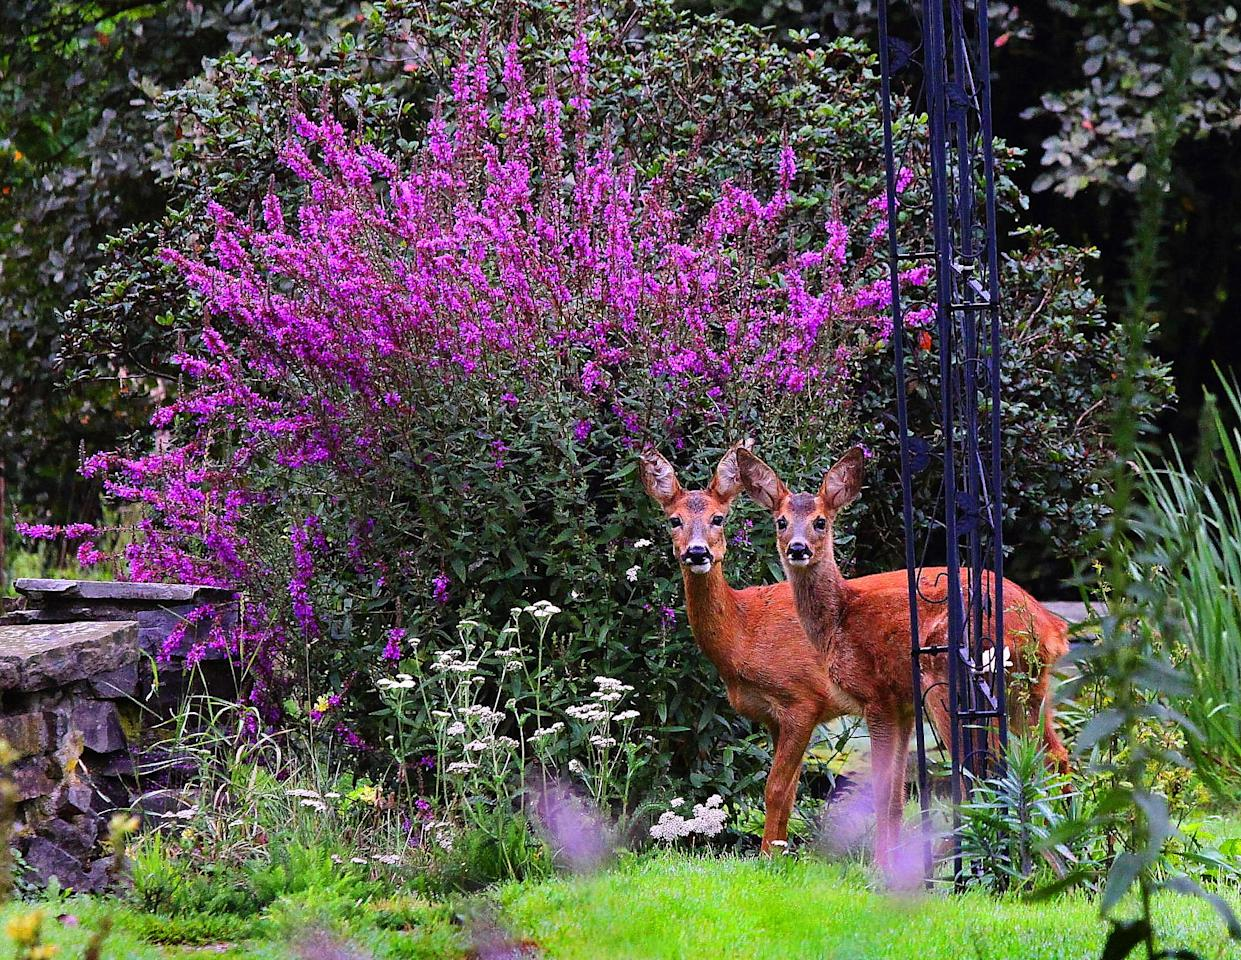 <p>It's that time of year agin—when all of the deer in your neighborhood team up on your garden to wreak havoc and eat all of your beloved plants. Protecting your gardens from pests can be pretty tricky—especially from huge intruders like deer—but exactly what you plant might make a difference.</p><p>If deer are a huge problem in your backyard, try planting some of these deer-resistant plants—yes, they exist! Deer <strong>hate </strong>fragrant blooms form certain herbs like lavender and especially sweet smelling flowers like peonies. They'll also stay away from toxic plants—naturally. Here's a list of all of the deer-resistant plants you should be putting in your garden to keep the pests out and gorgeous blooms in. </p>